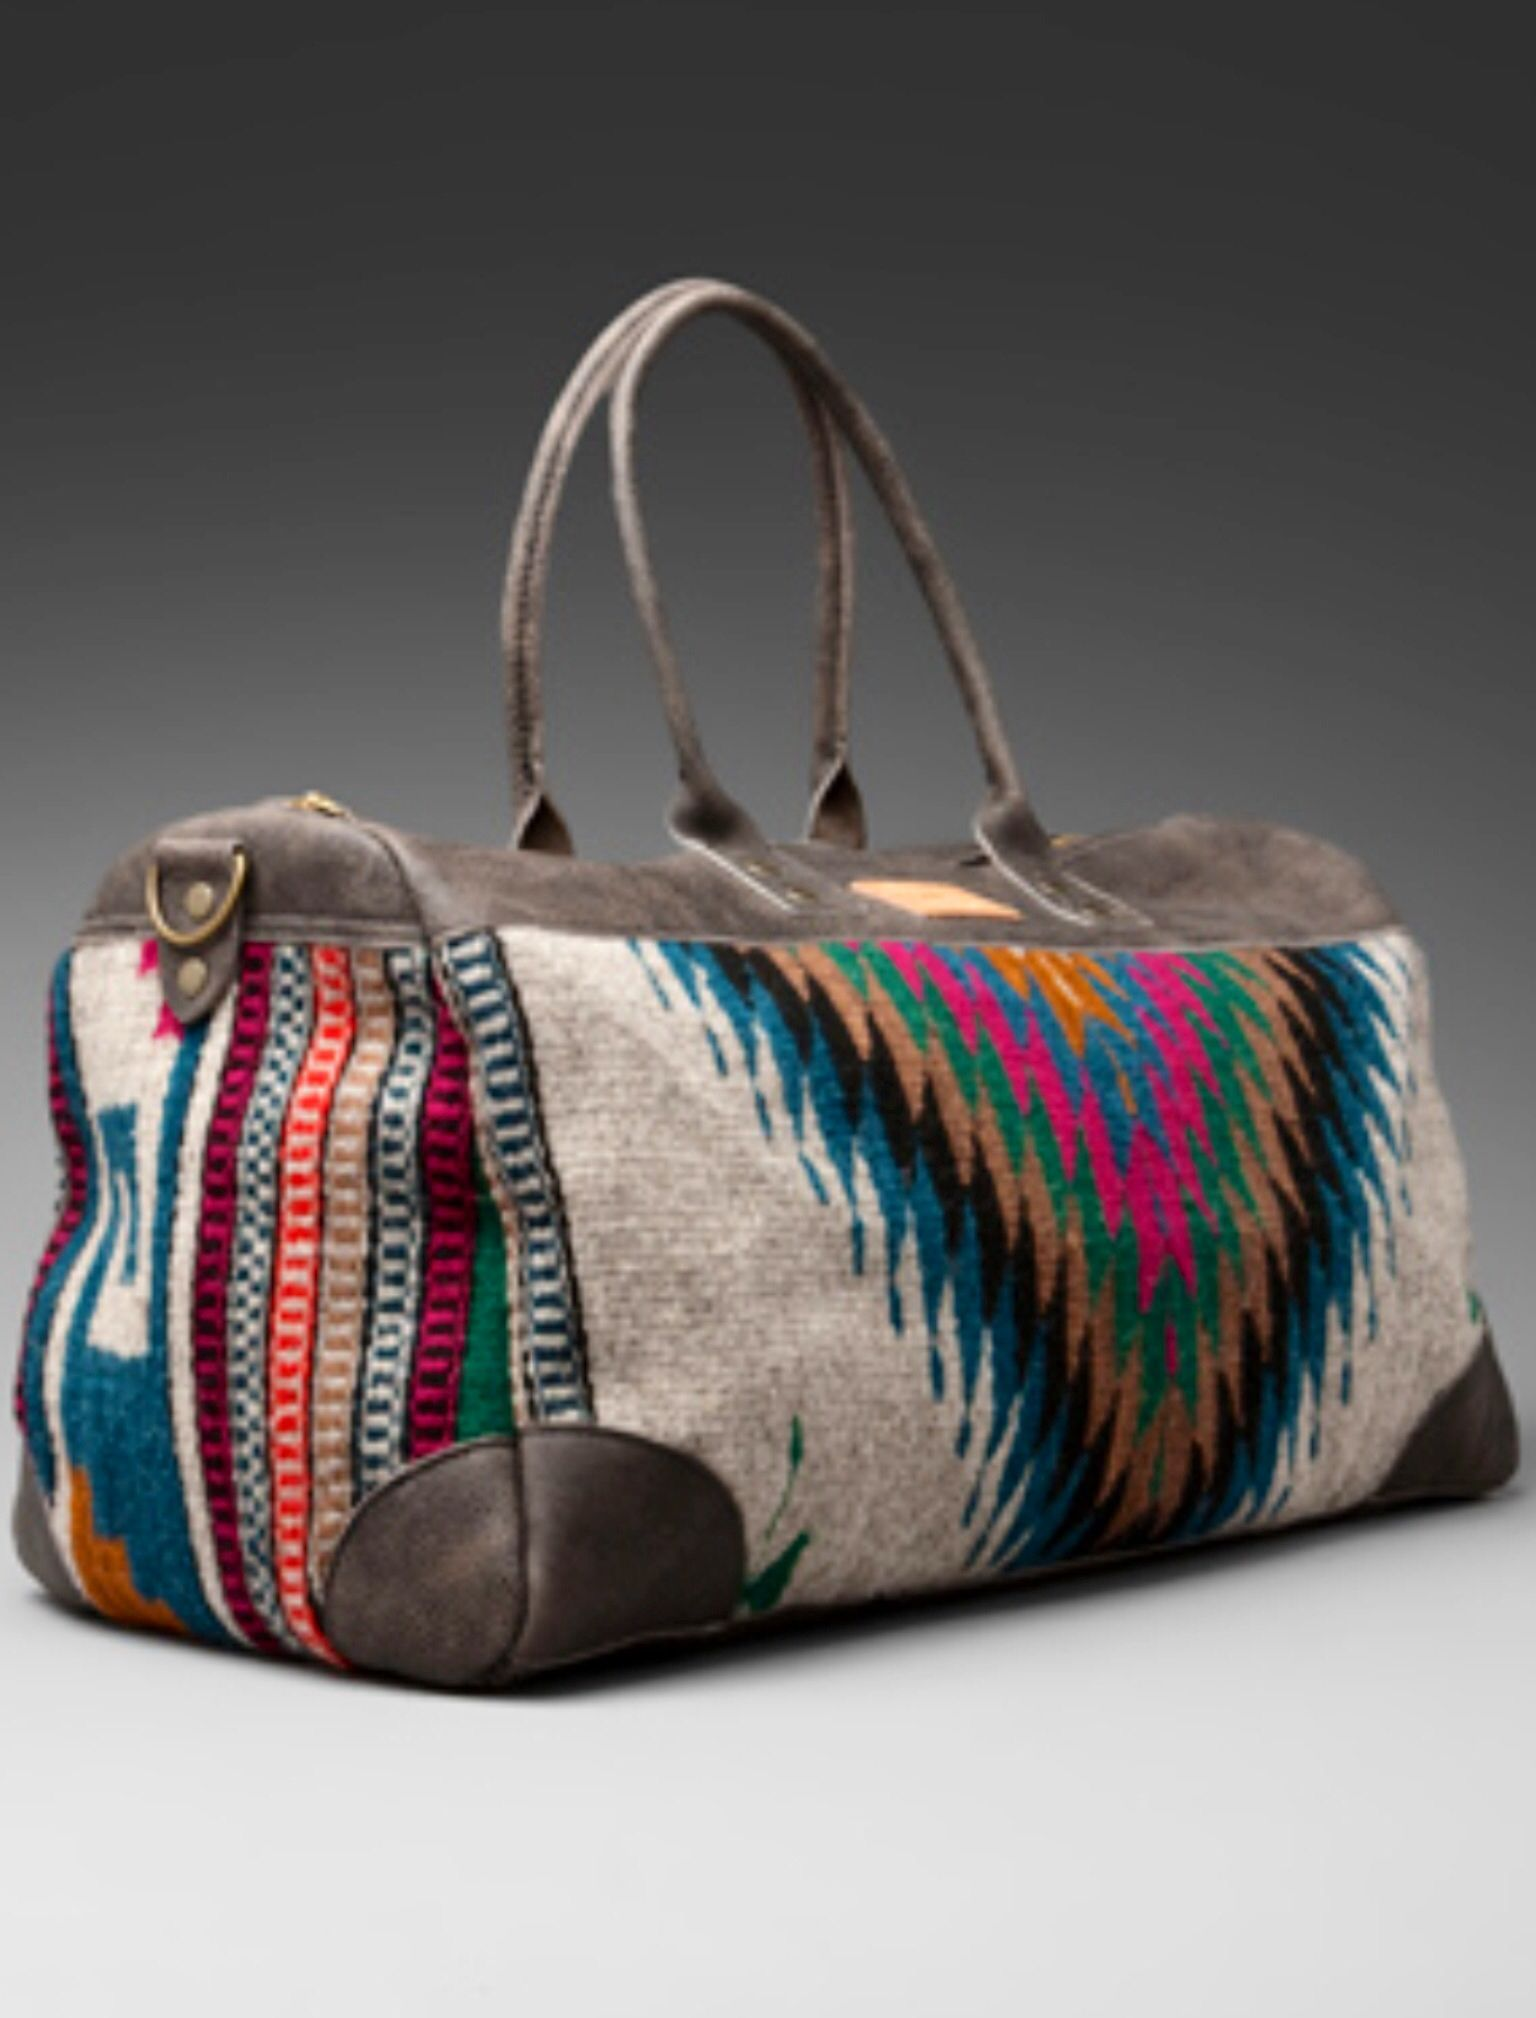 Love This Indian Print Oversized Bag Where Can I Find One That Is Affordable